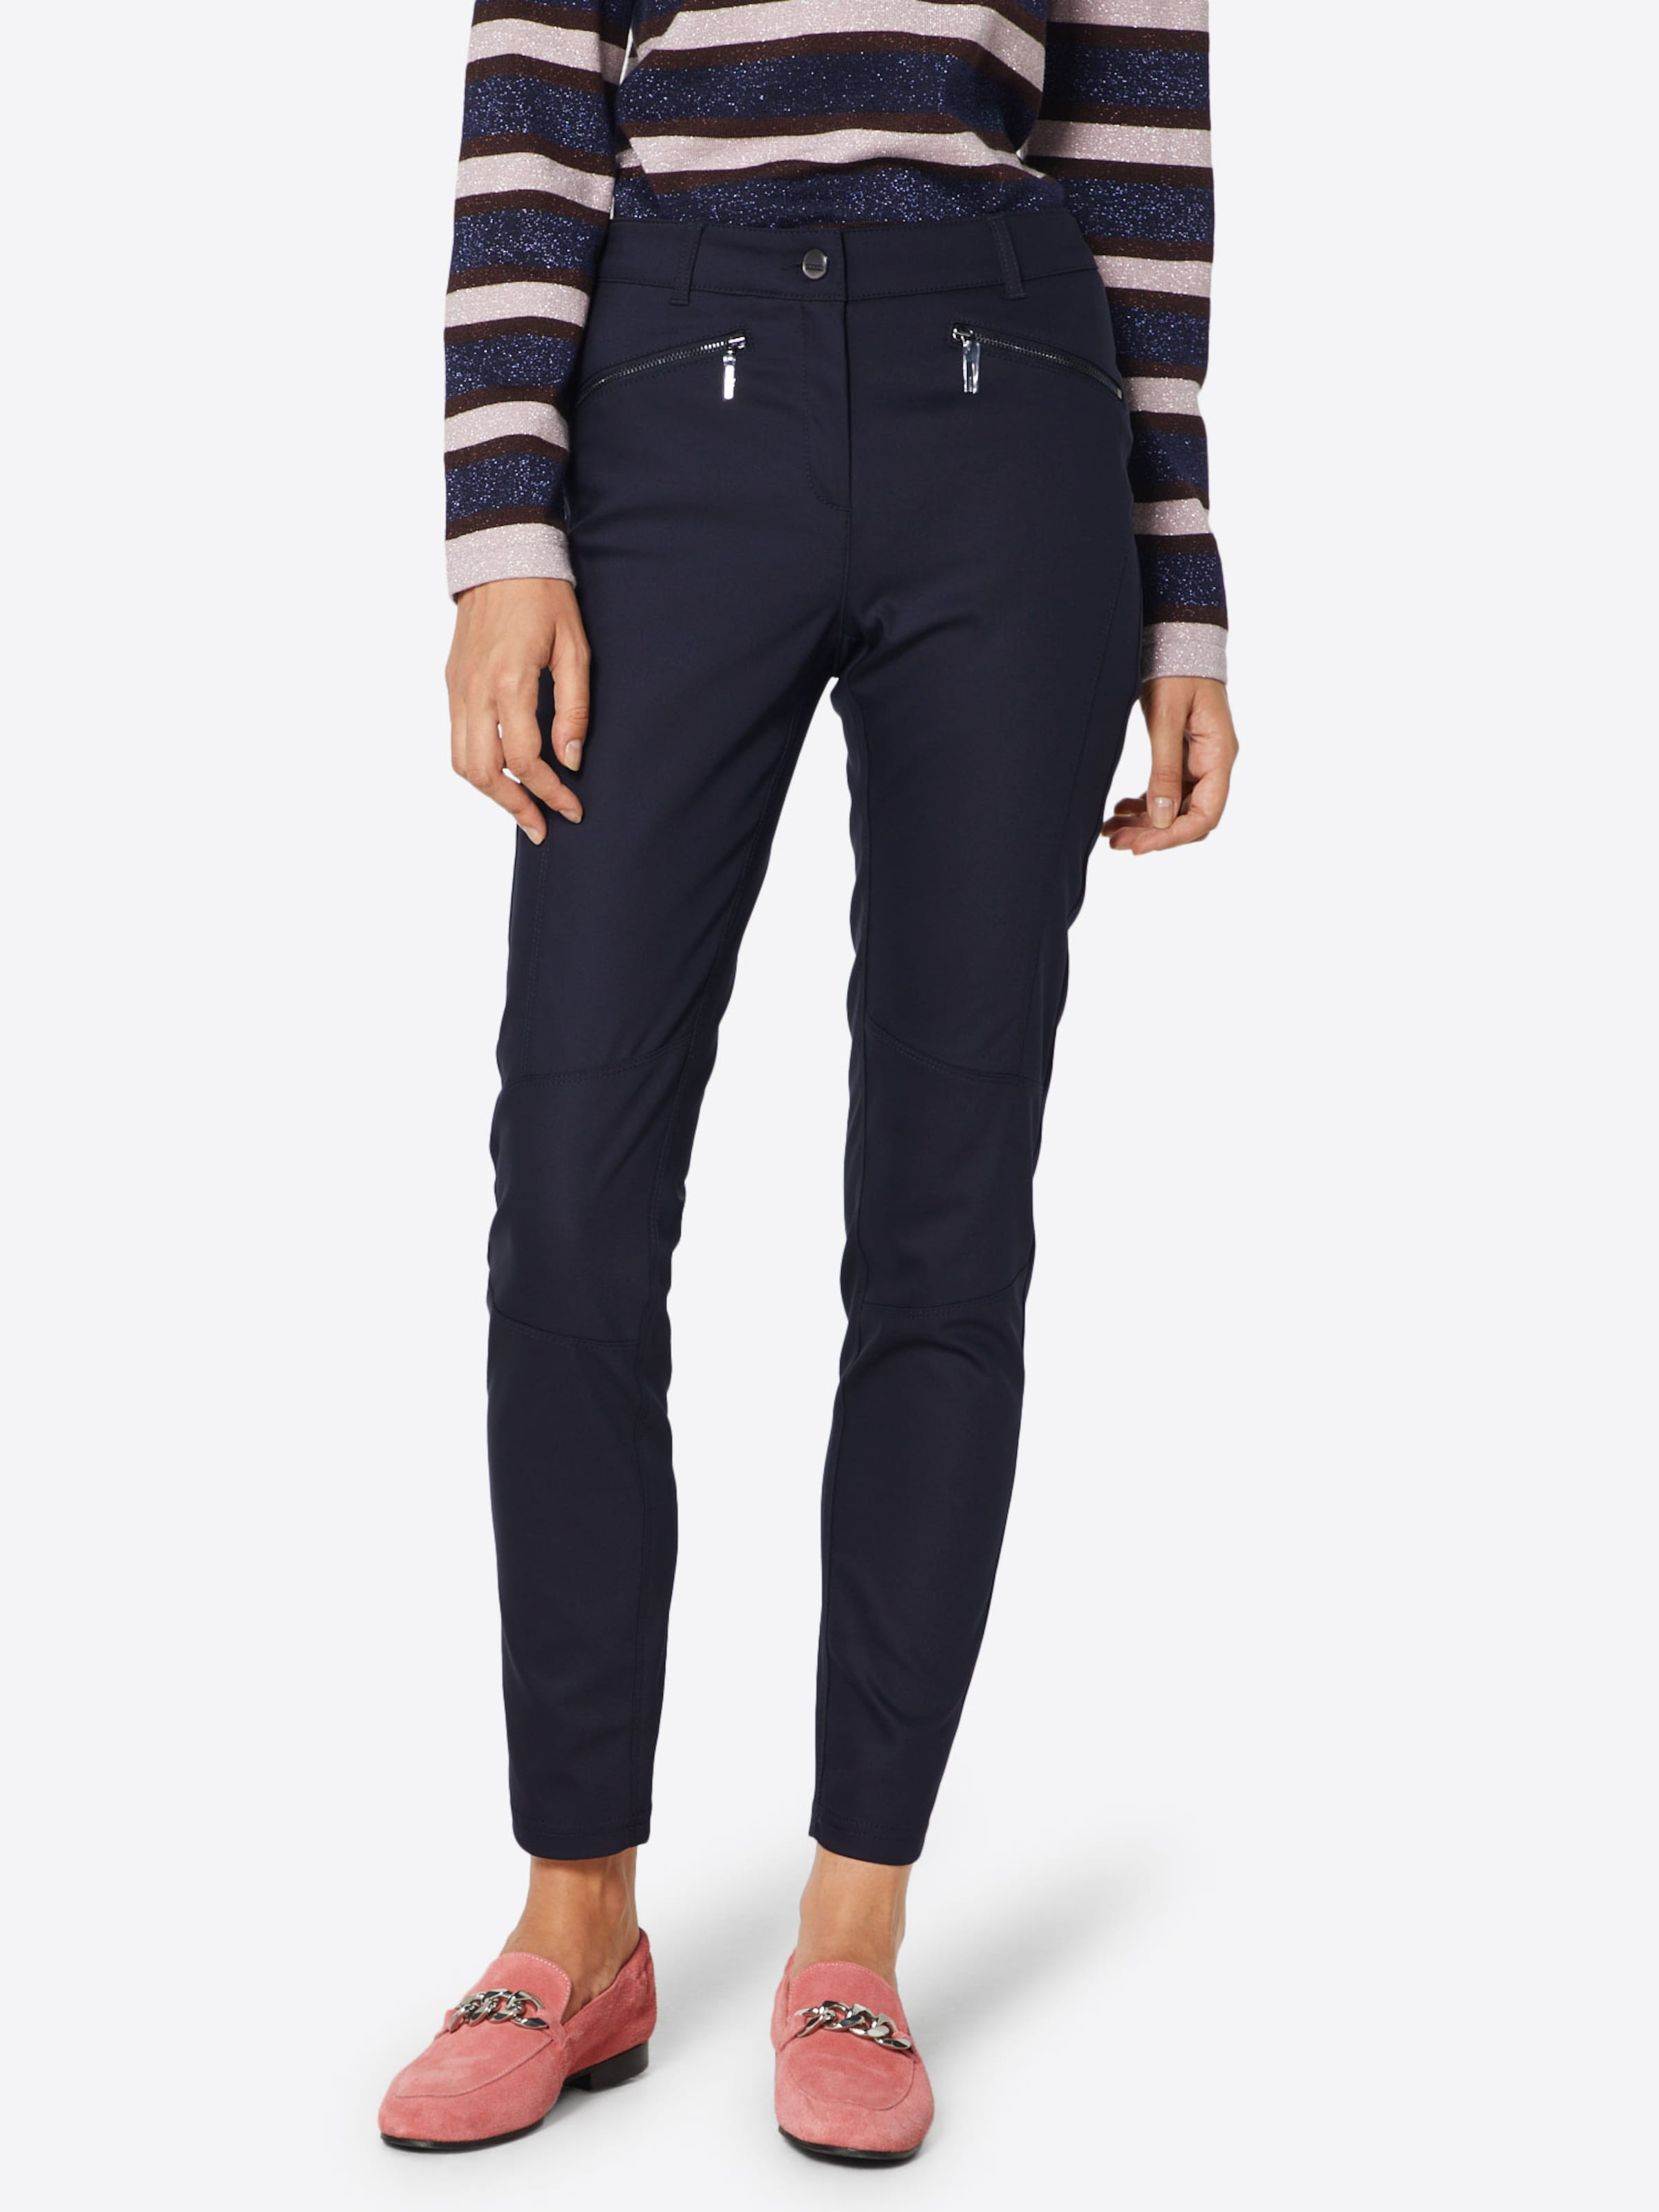 Comma In Hose Comma Hose In Hose Navy Navy In Navy Comma Comma Hose 1Jc3lTFK